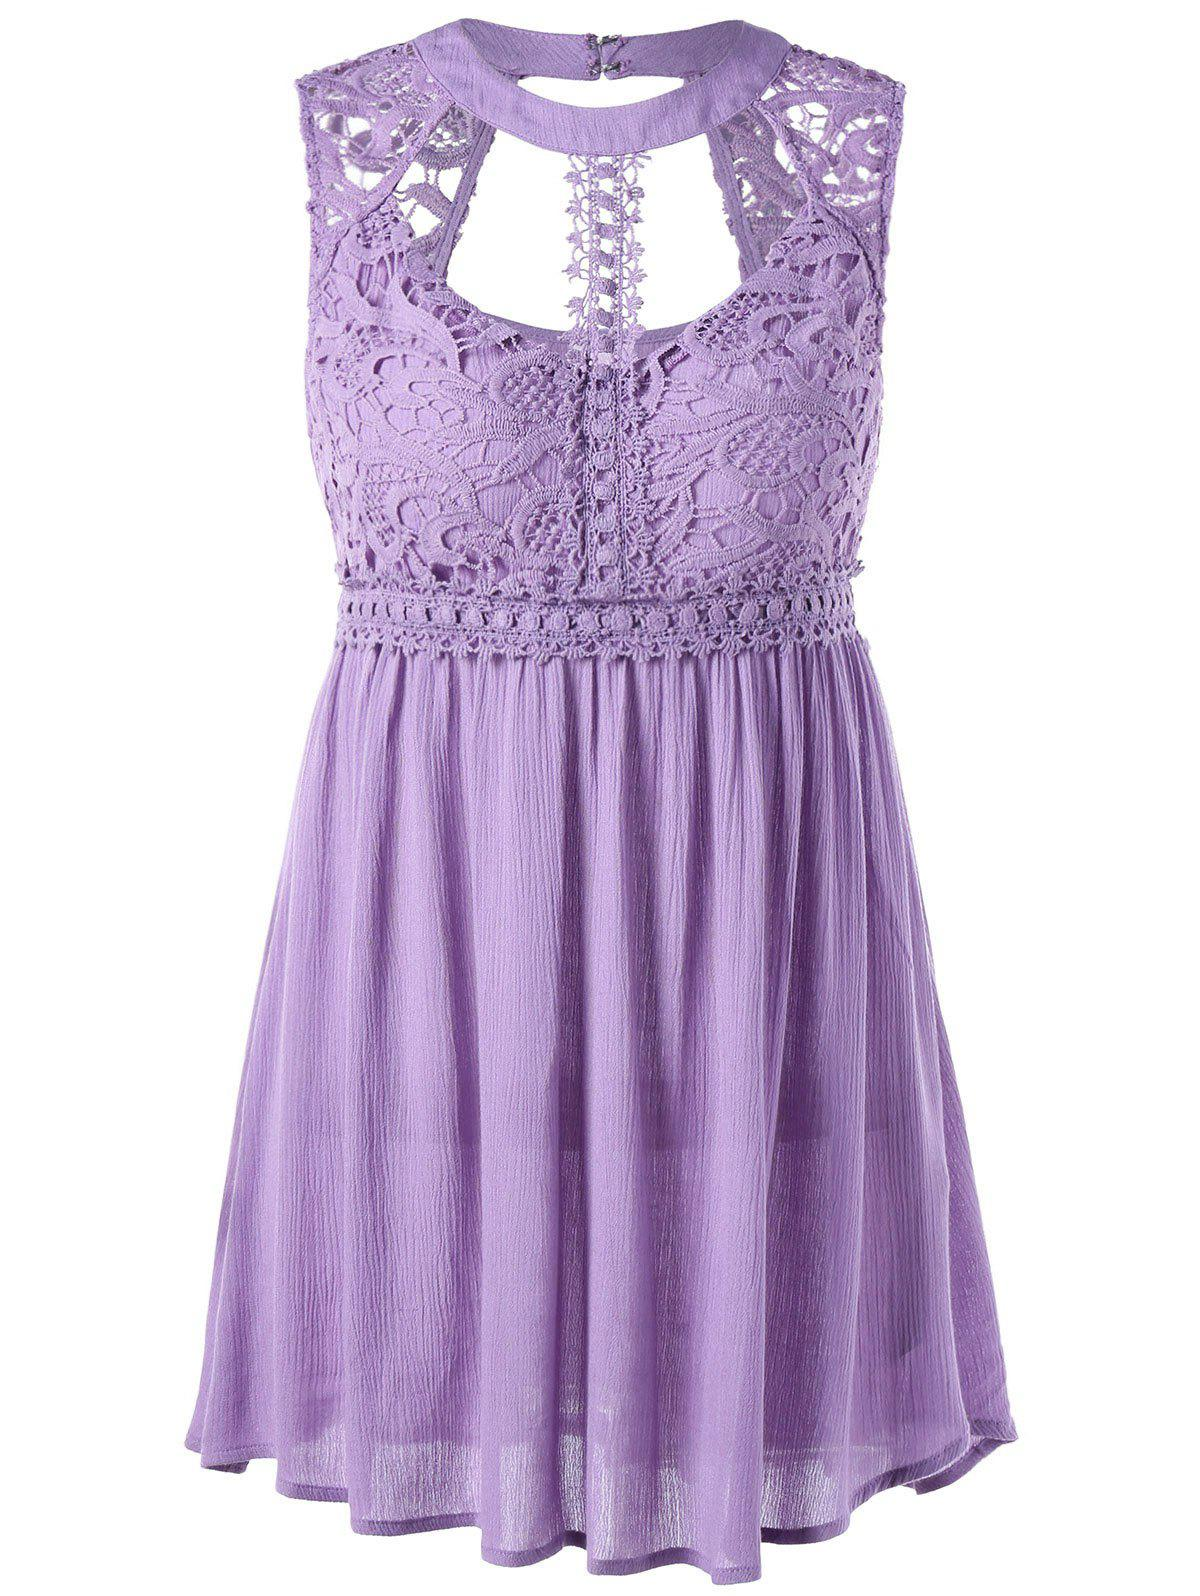 Lace Trim Cut Out Sleeveless Blouse lace trim sleeveless dressy blouse with camisole